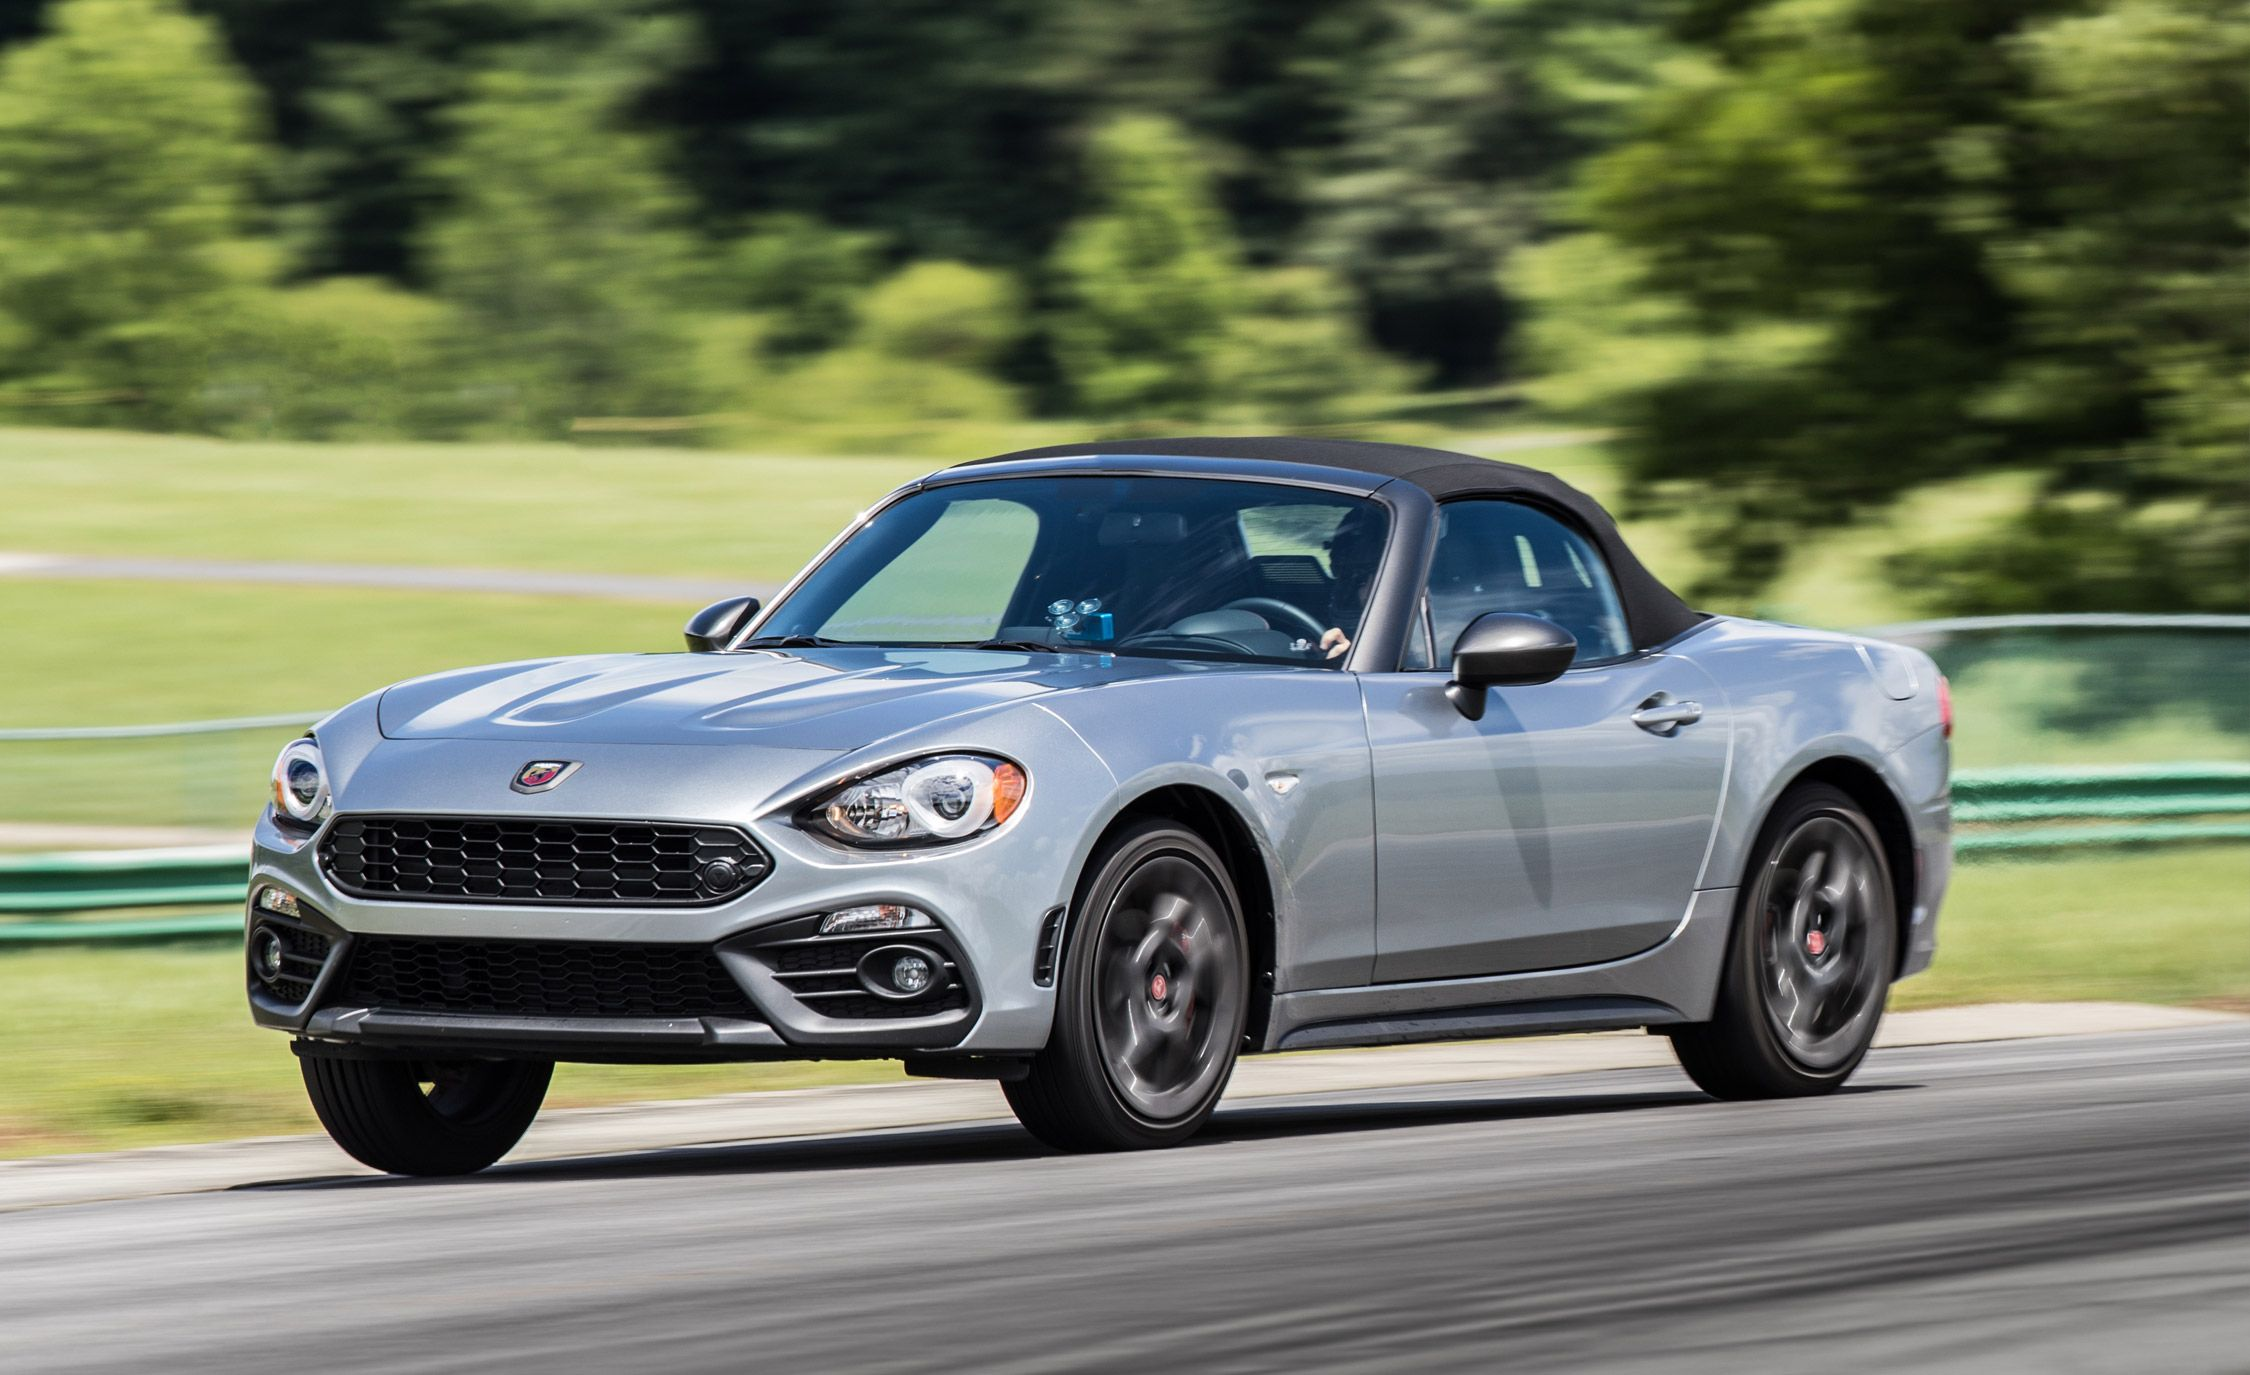 fiat 124 spider abarth at lightning lap 2017 feature. Black Bedroom Furniture Sets. Home Design Ideas